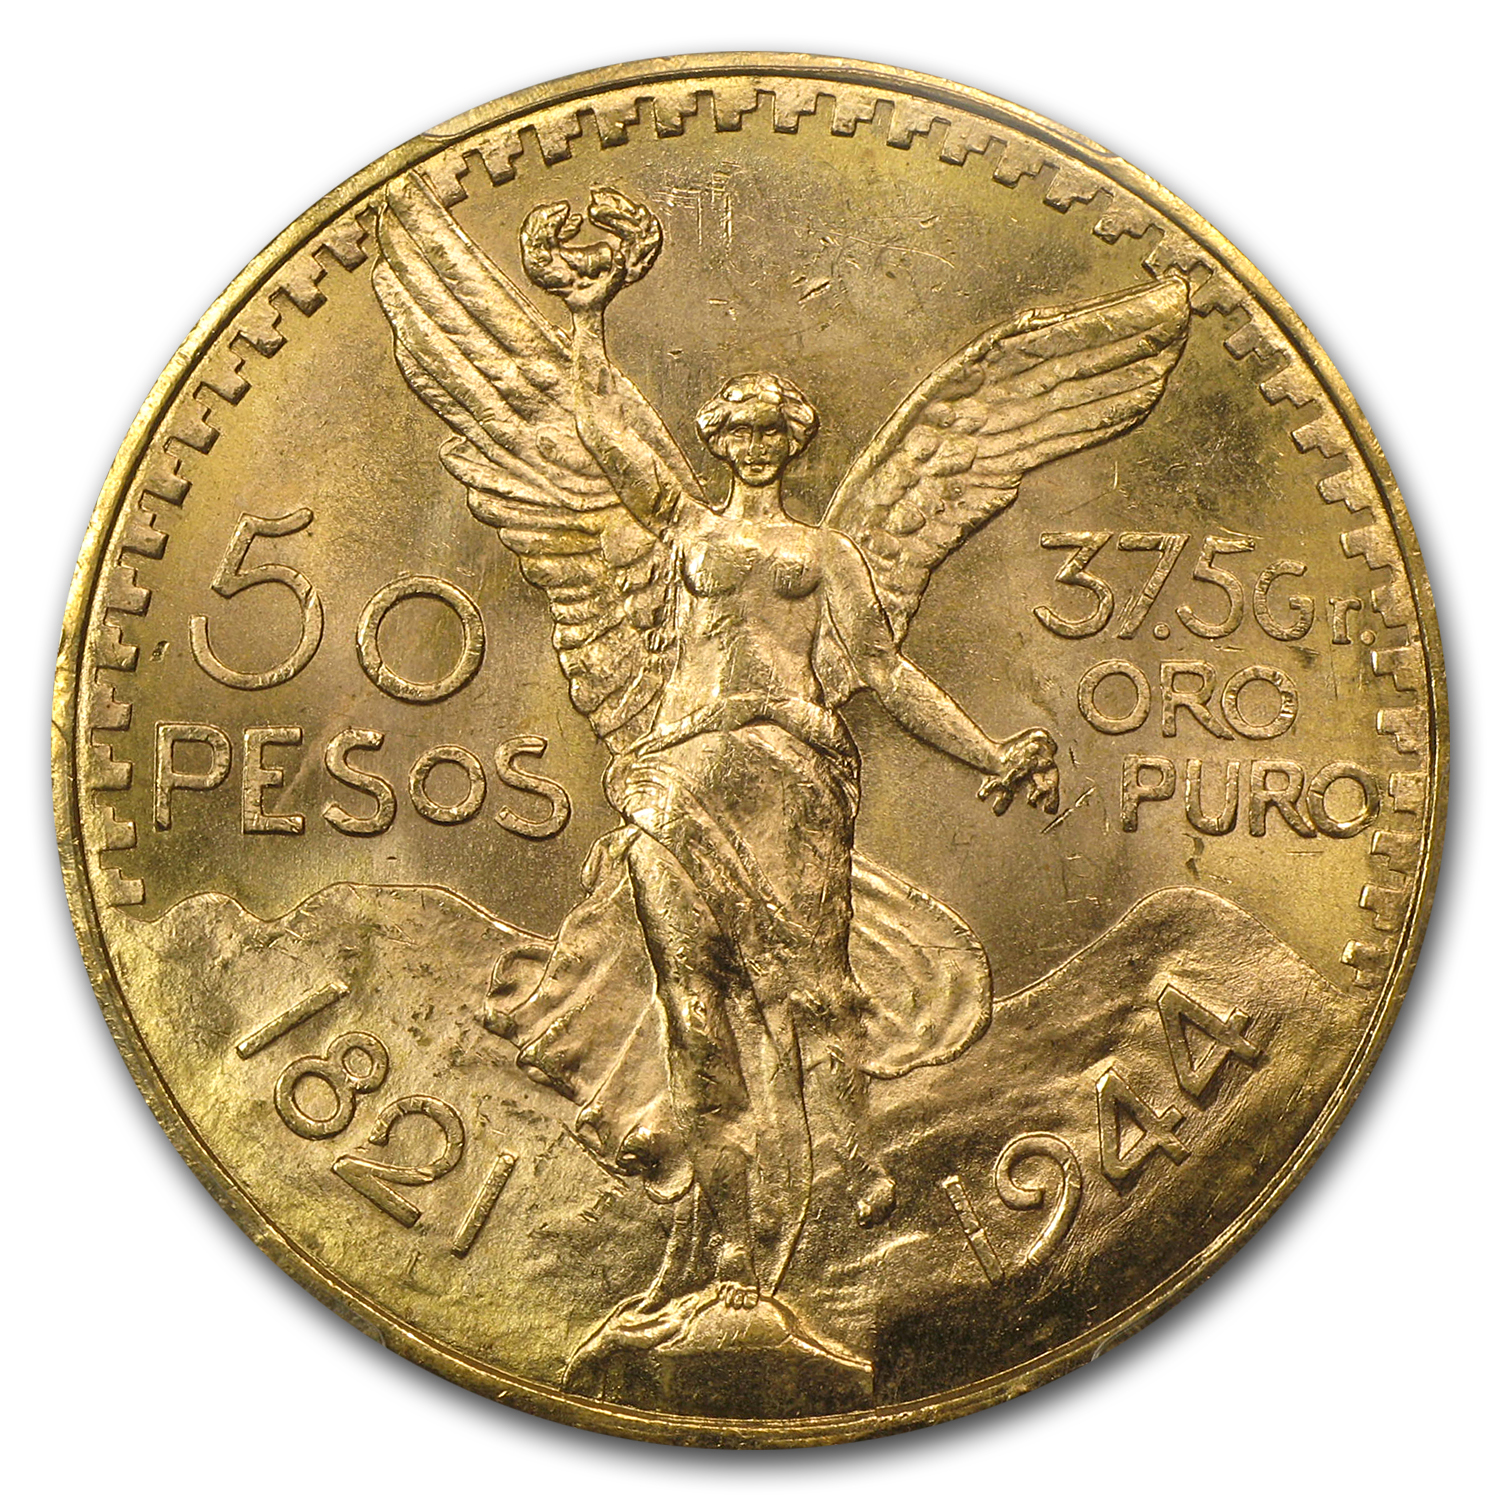 1944 Mexico Gold 50 Pesos MS-66 PCGS (Finest Known)